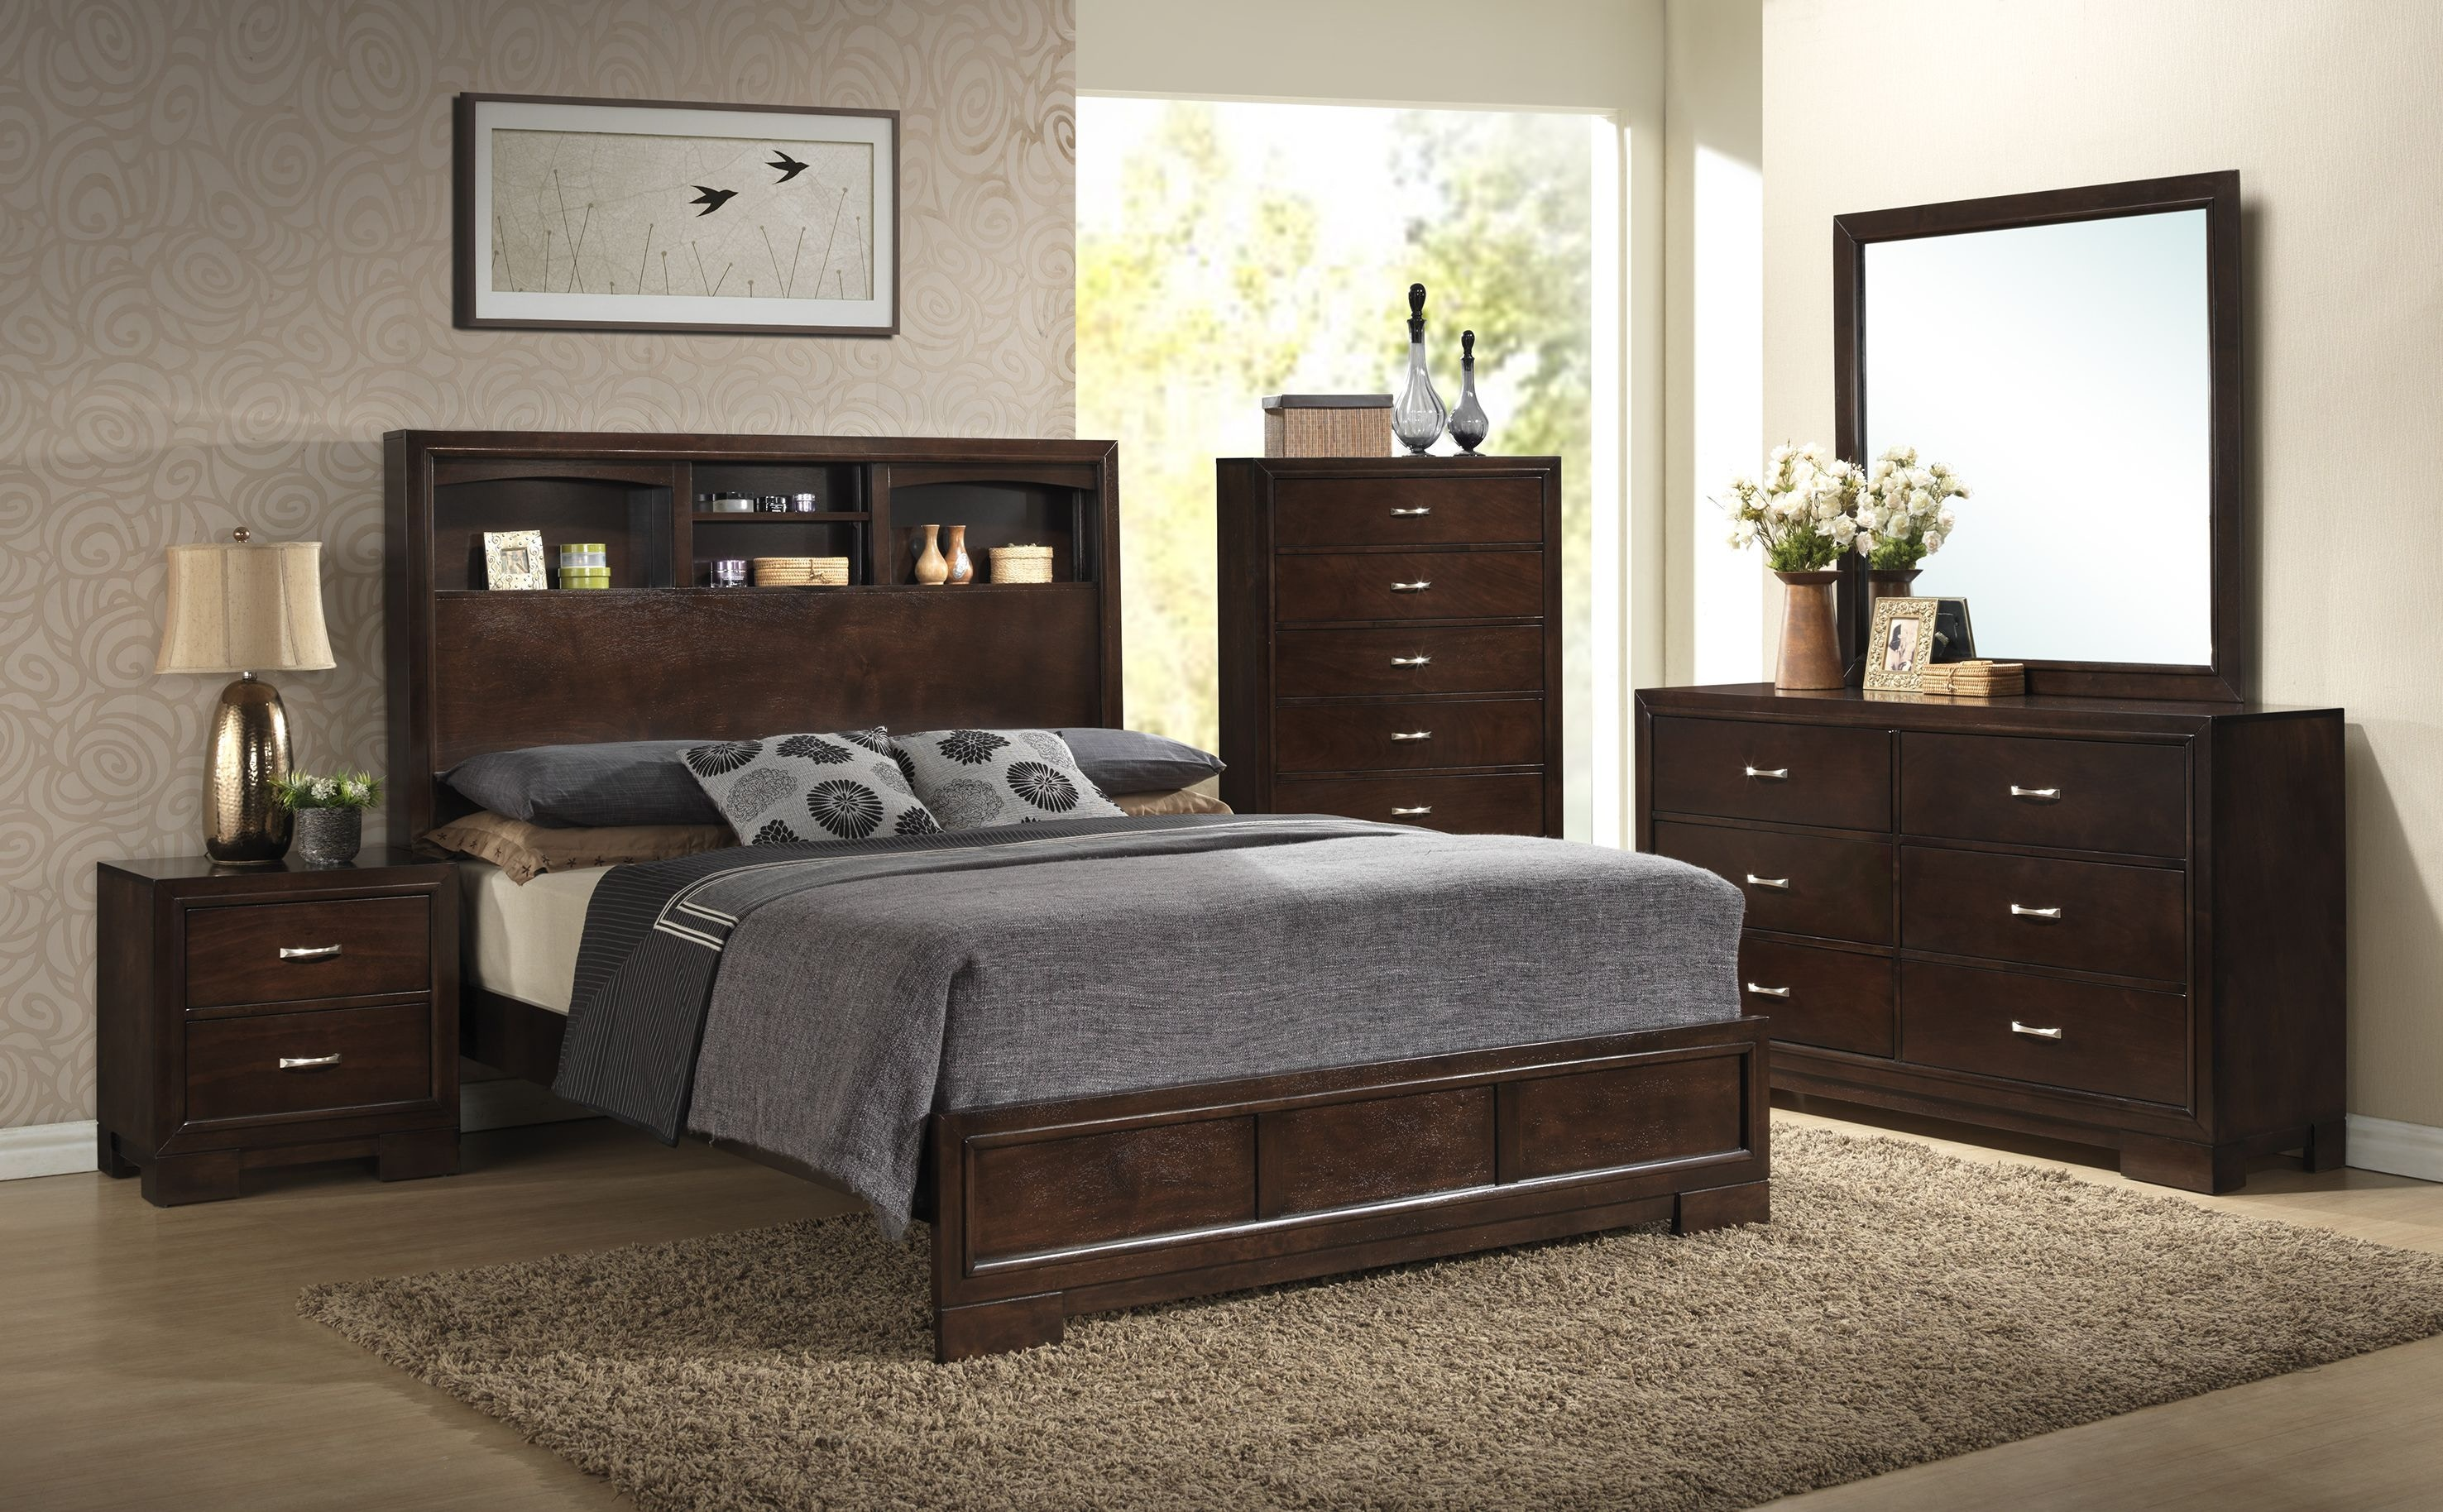 Lifestyle Dresser, Mirror, Chest, Queen Bookcase Bed Set C4233Q